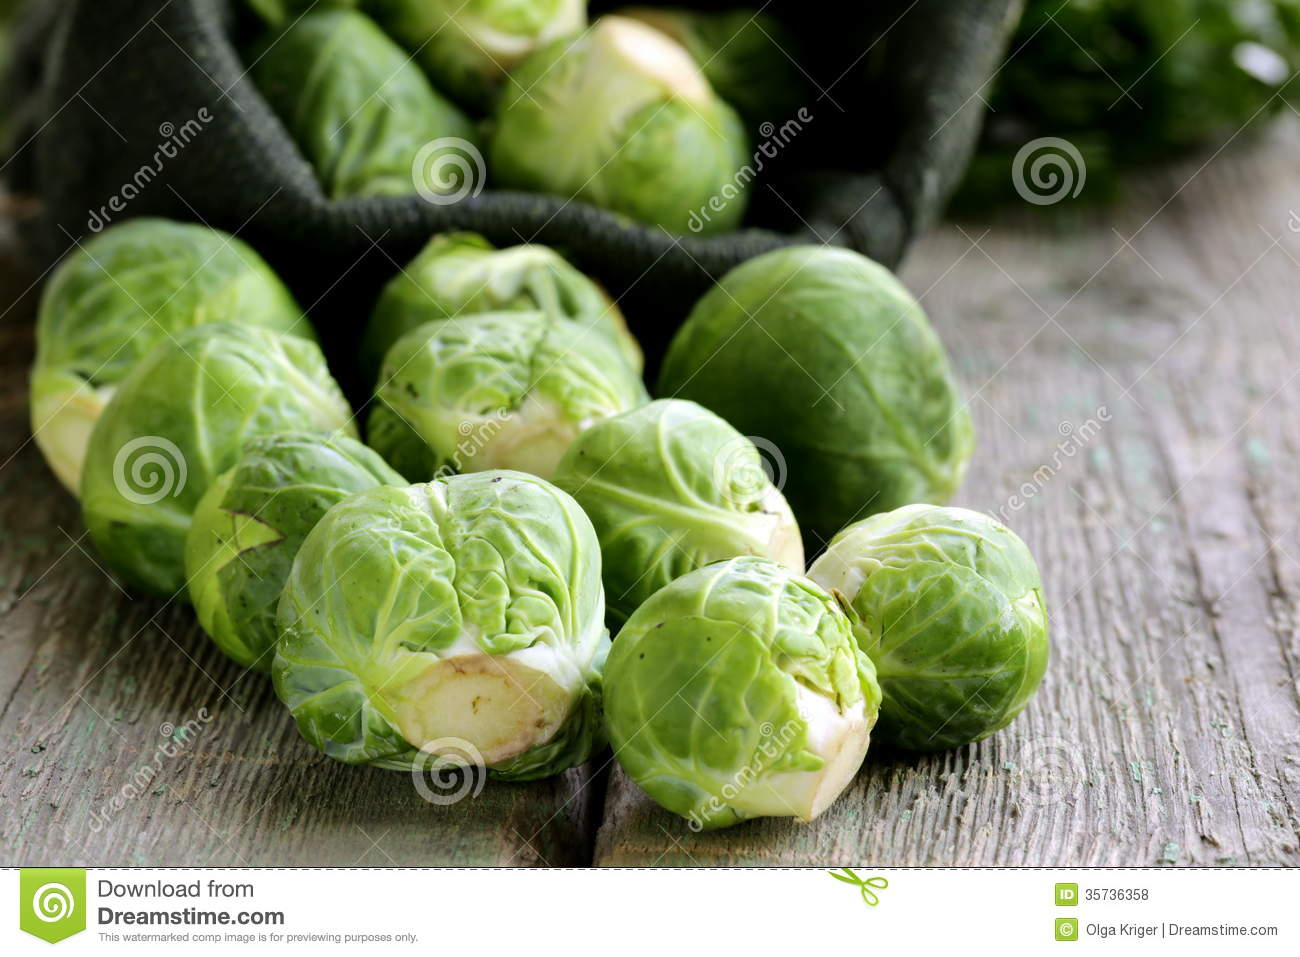 how to eat raw brussel sprouts